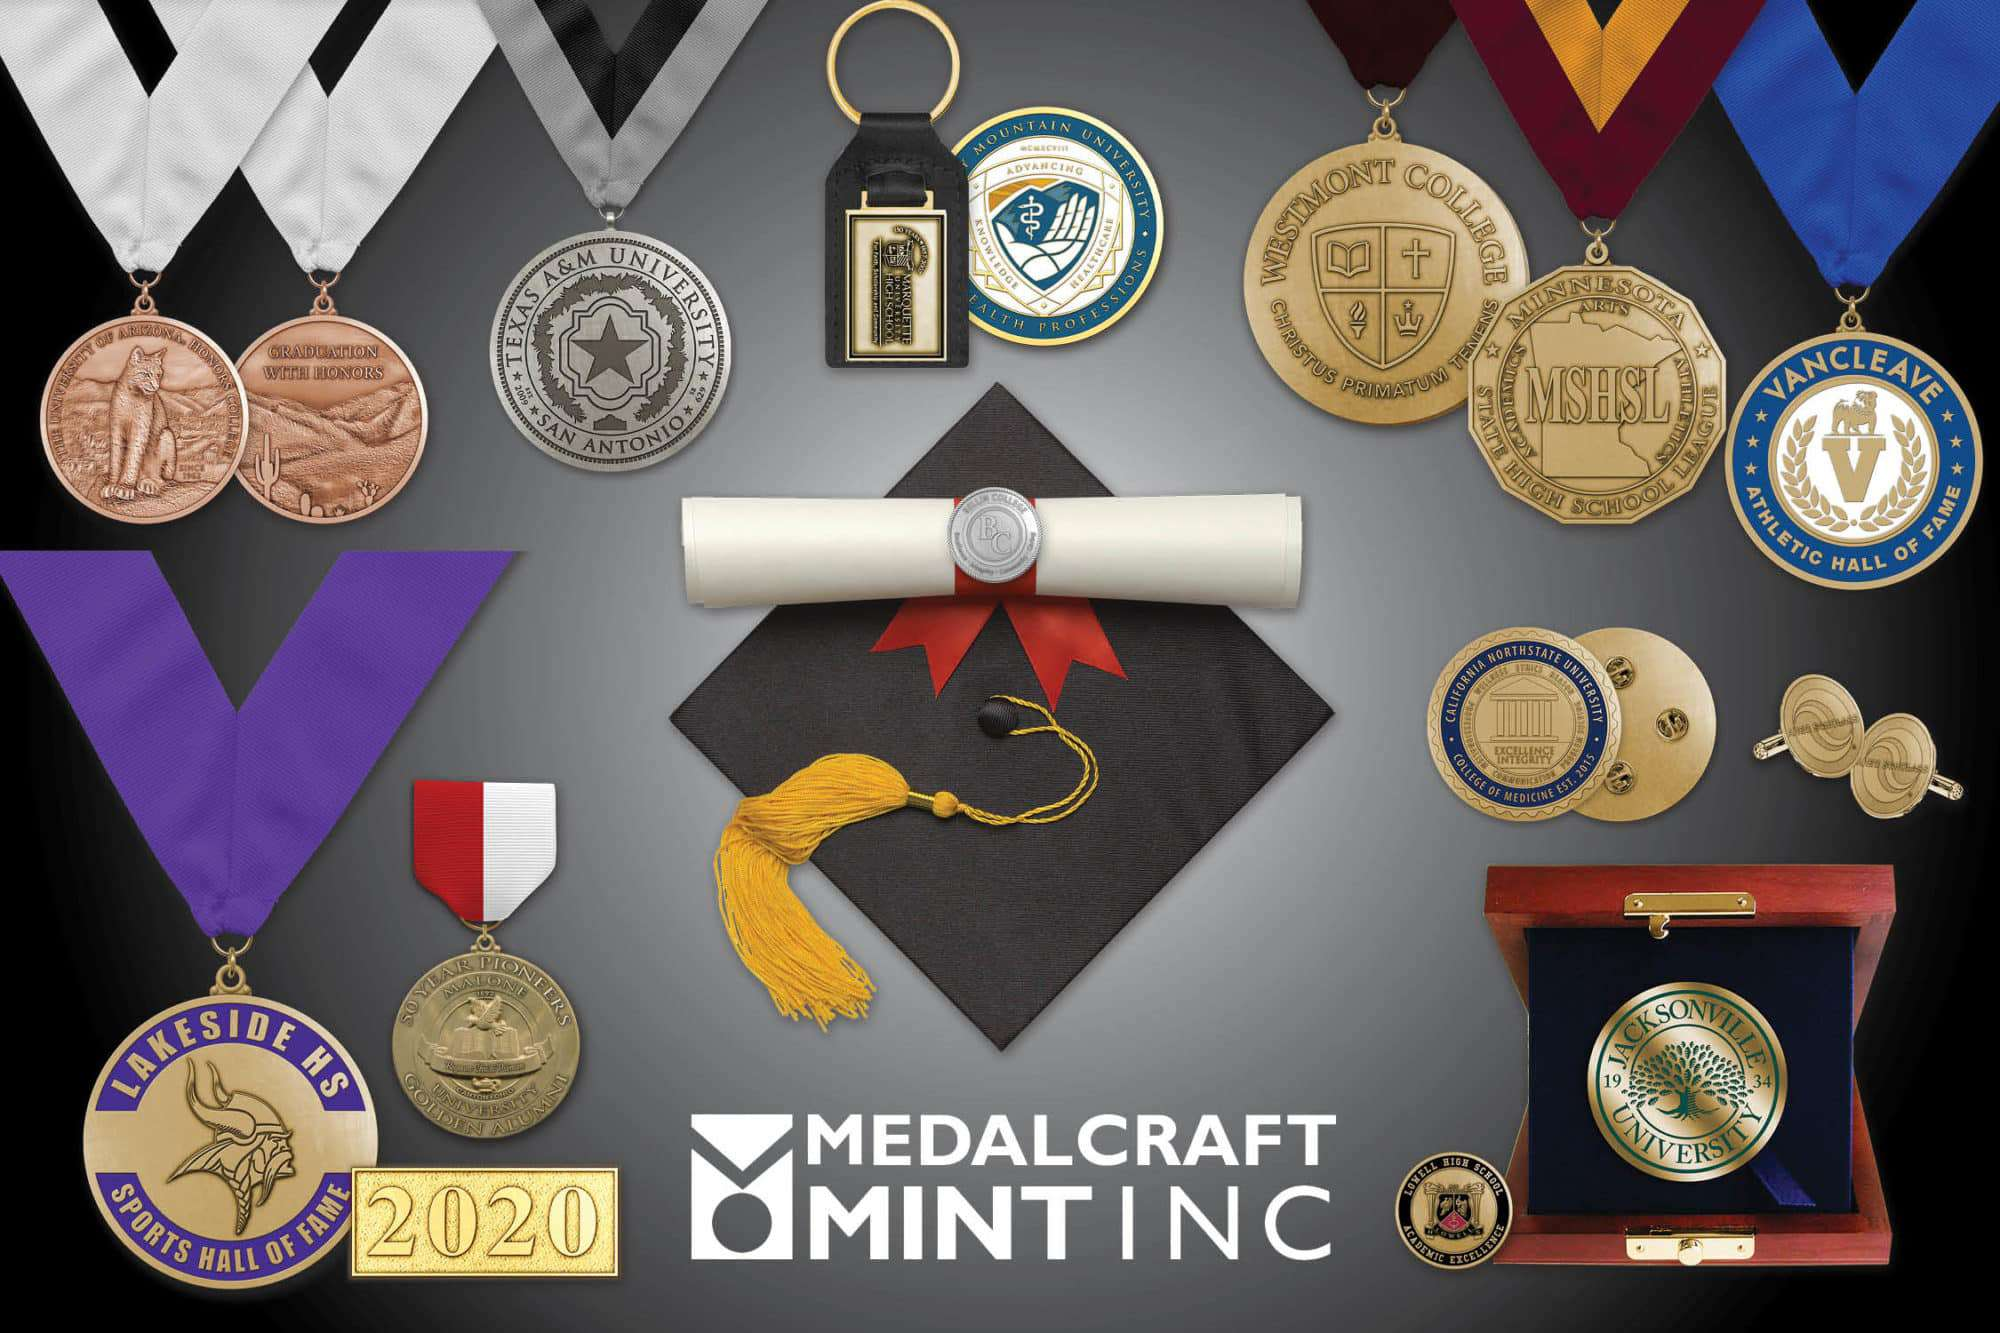 Graduation medallion popularity increases behind custom designs